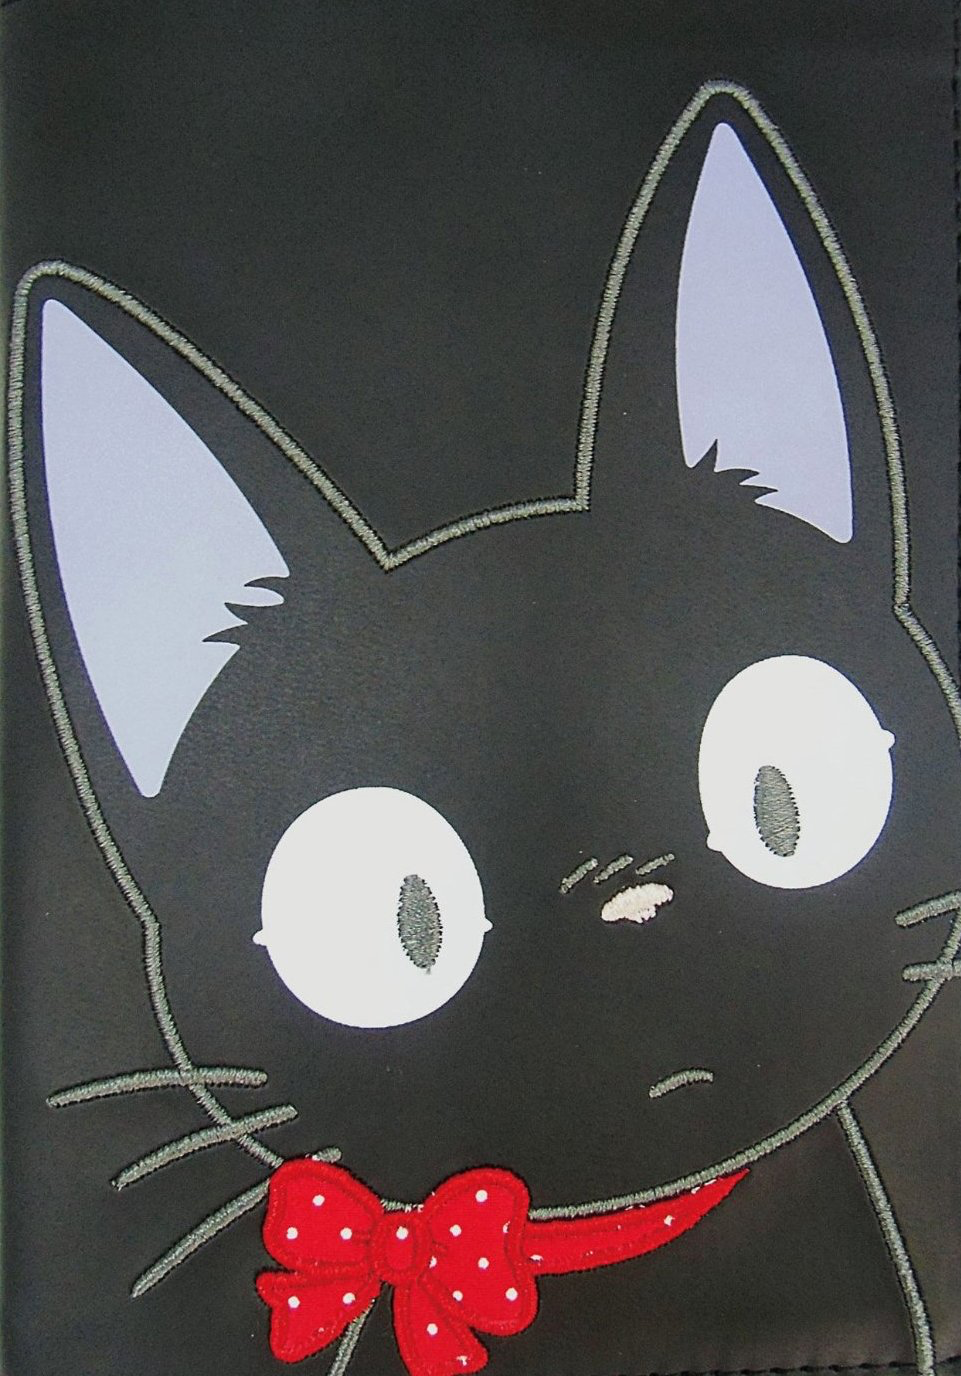 Jiji From Kiki S Delivery Service 猫 イラスト かわいい ネコ イラスト スタジオジブリ